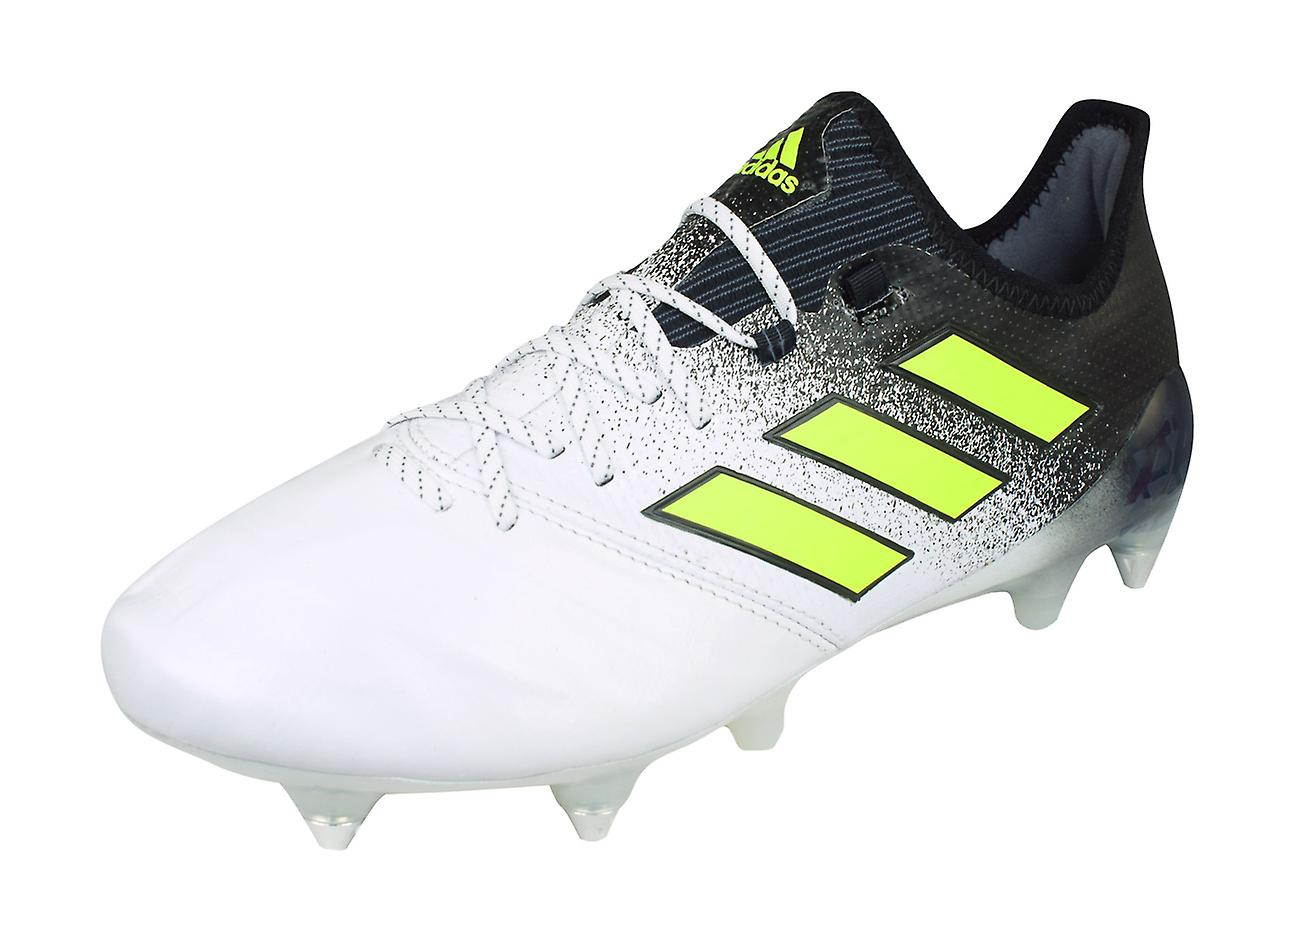 premium selection 829c2 f020b adidas Ace 17.1 SG Leather Mens Soft Ground Football Boots - White and Black